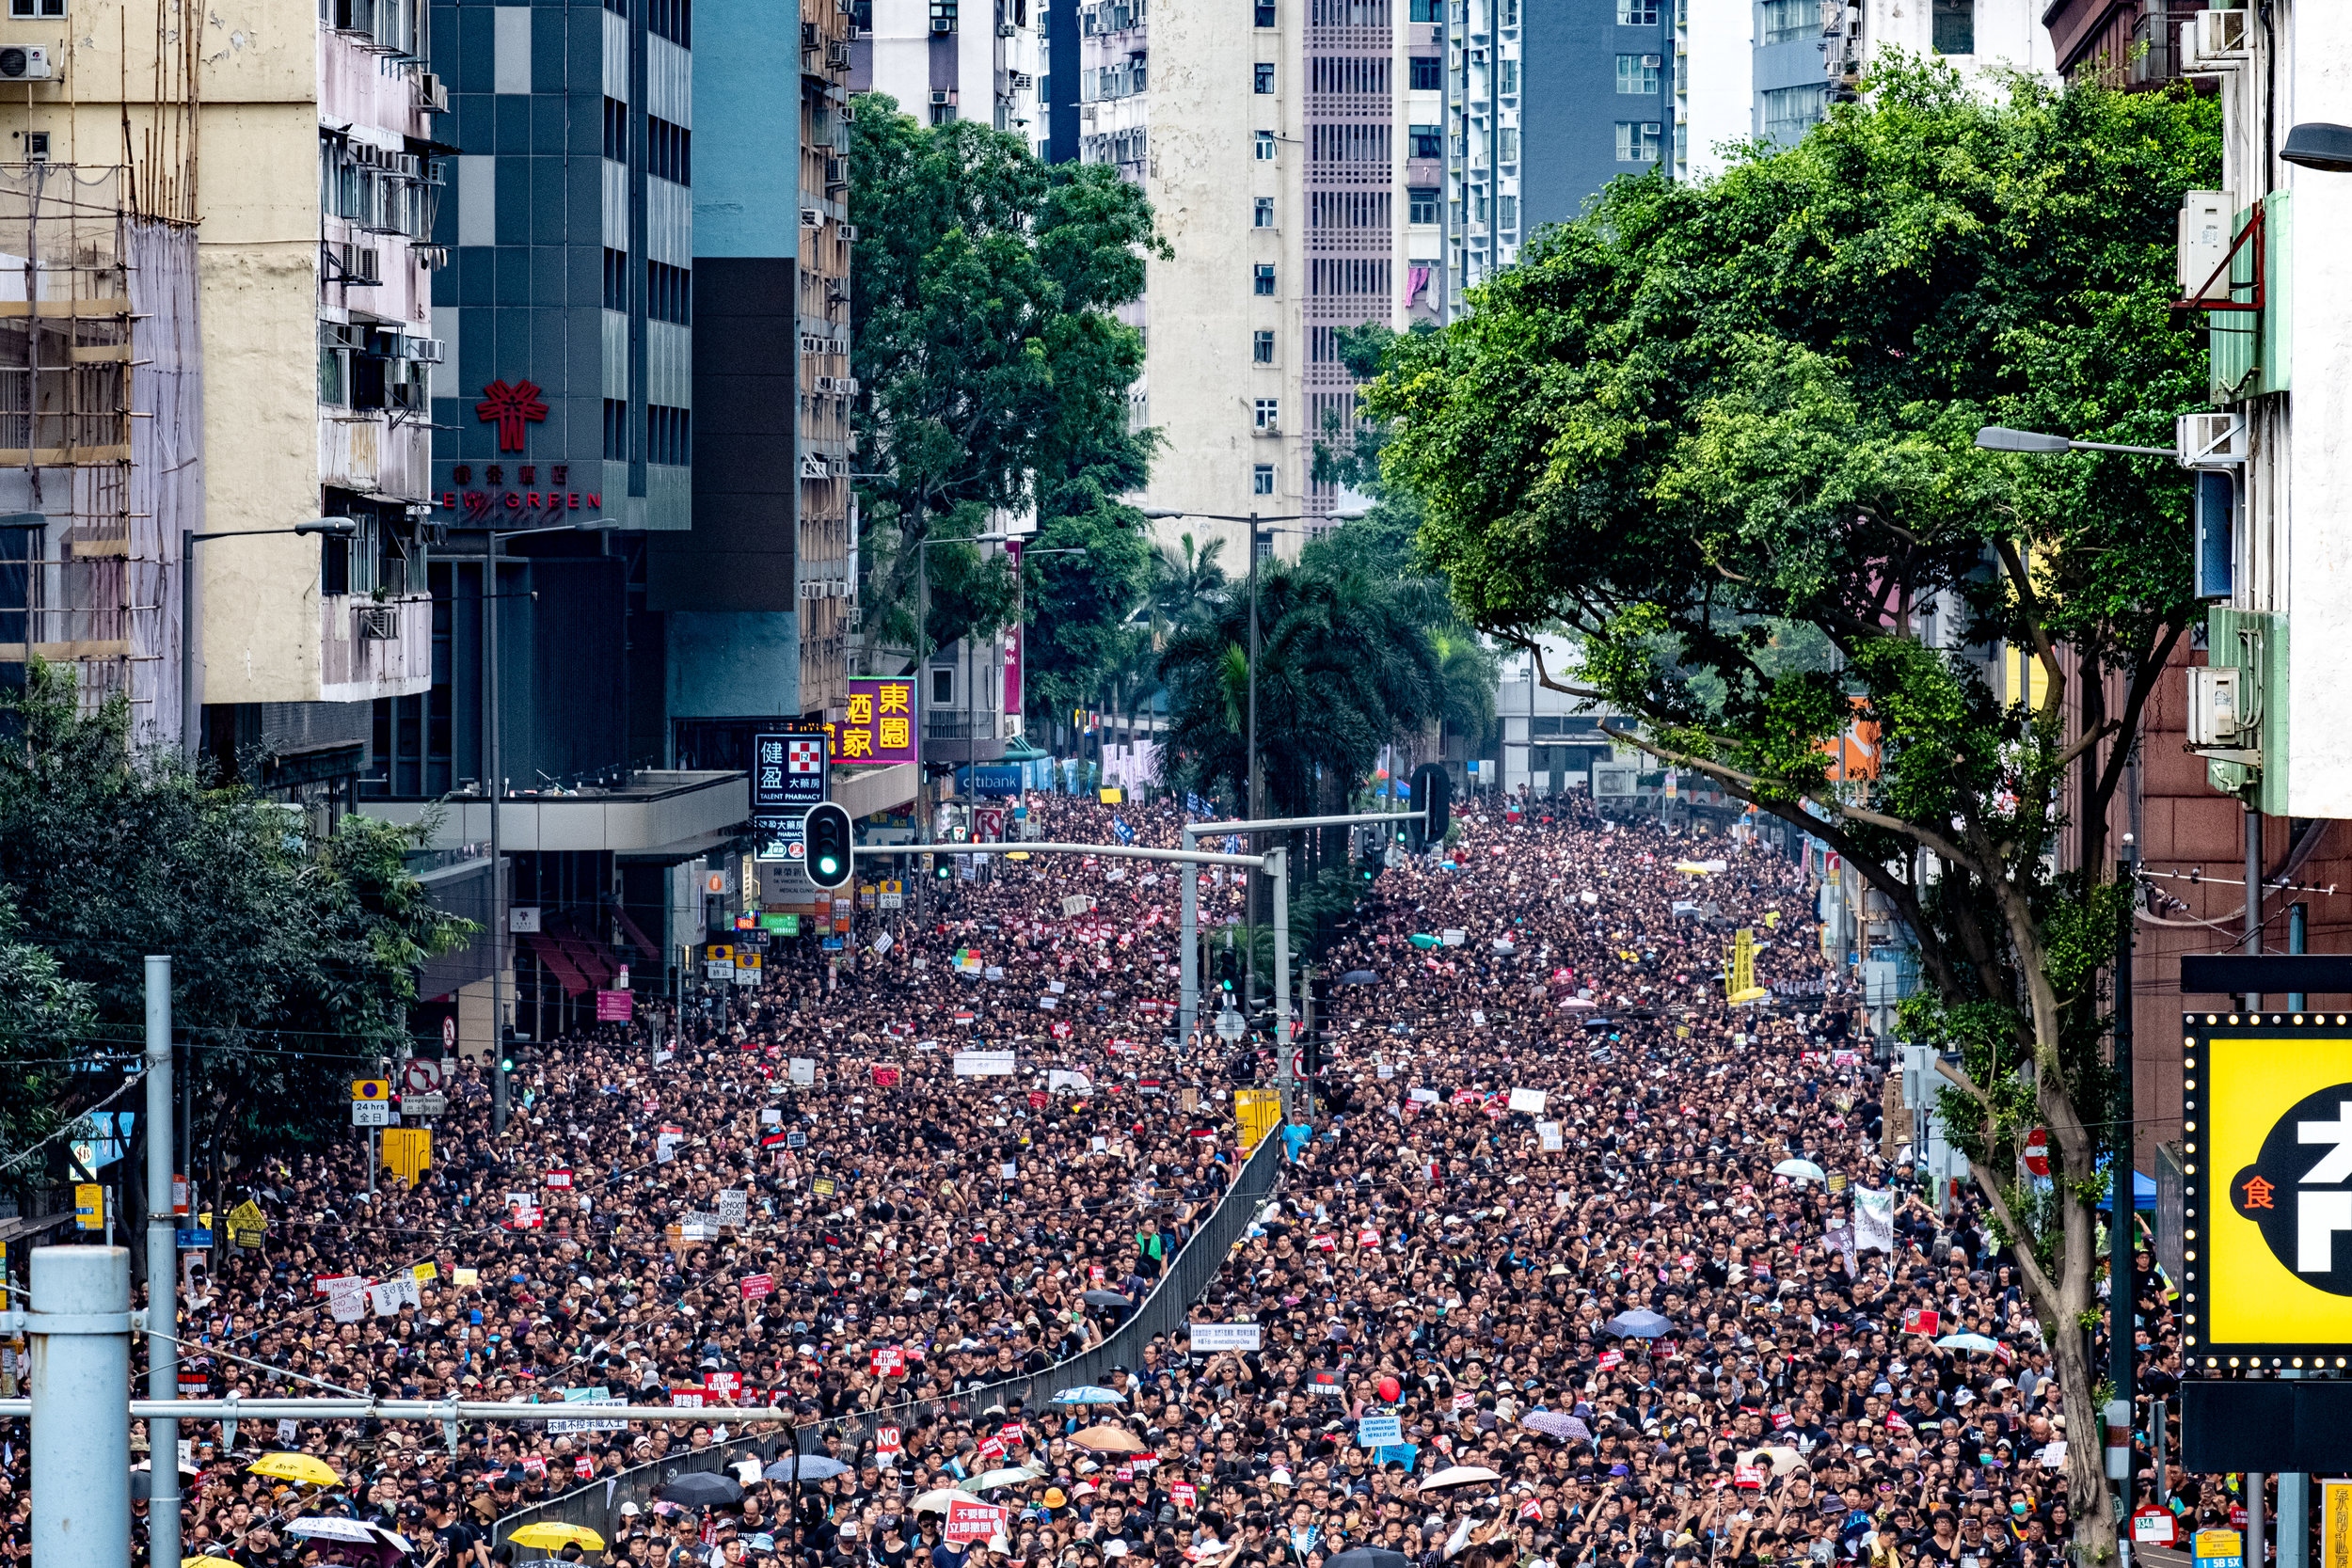 Two-million strong anti-extradition bill march - June 16, 2019